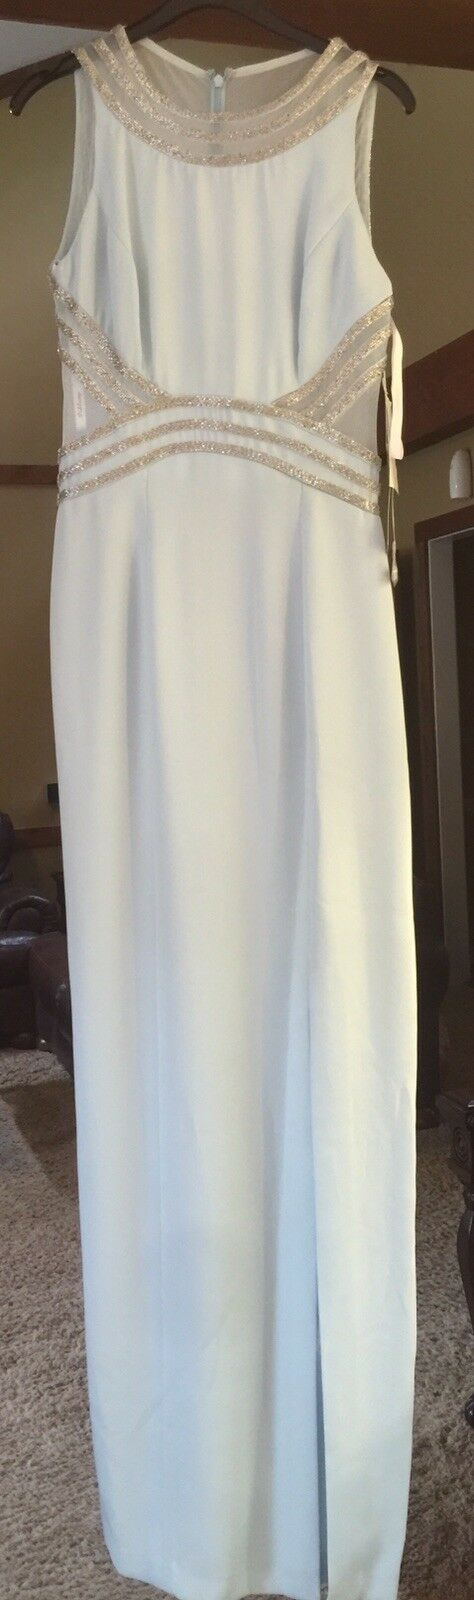 Crystal bluee Peak Evenings Size 2 Gown Pageant Prom Dress